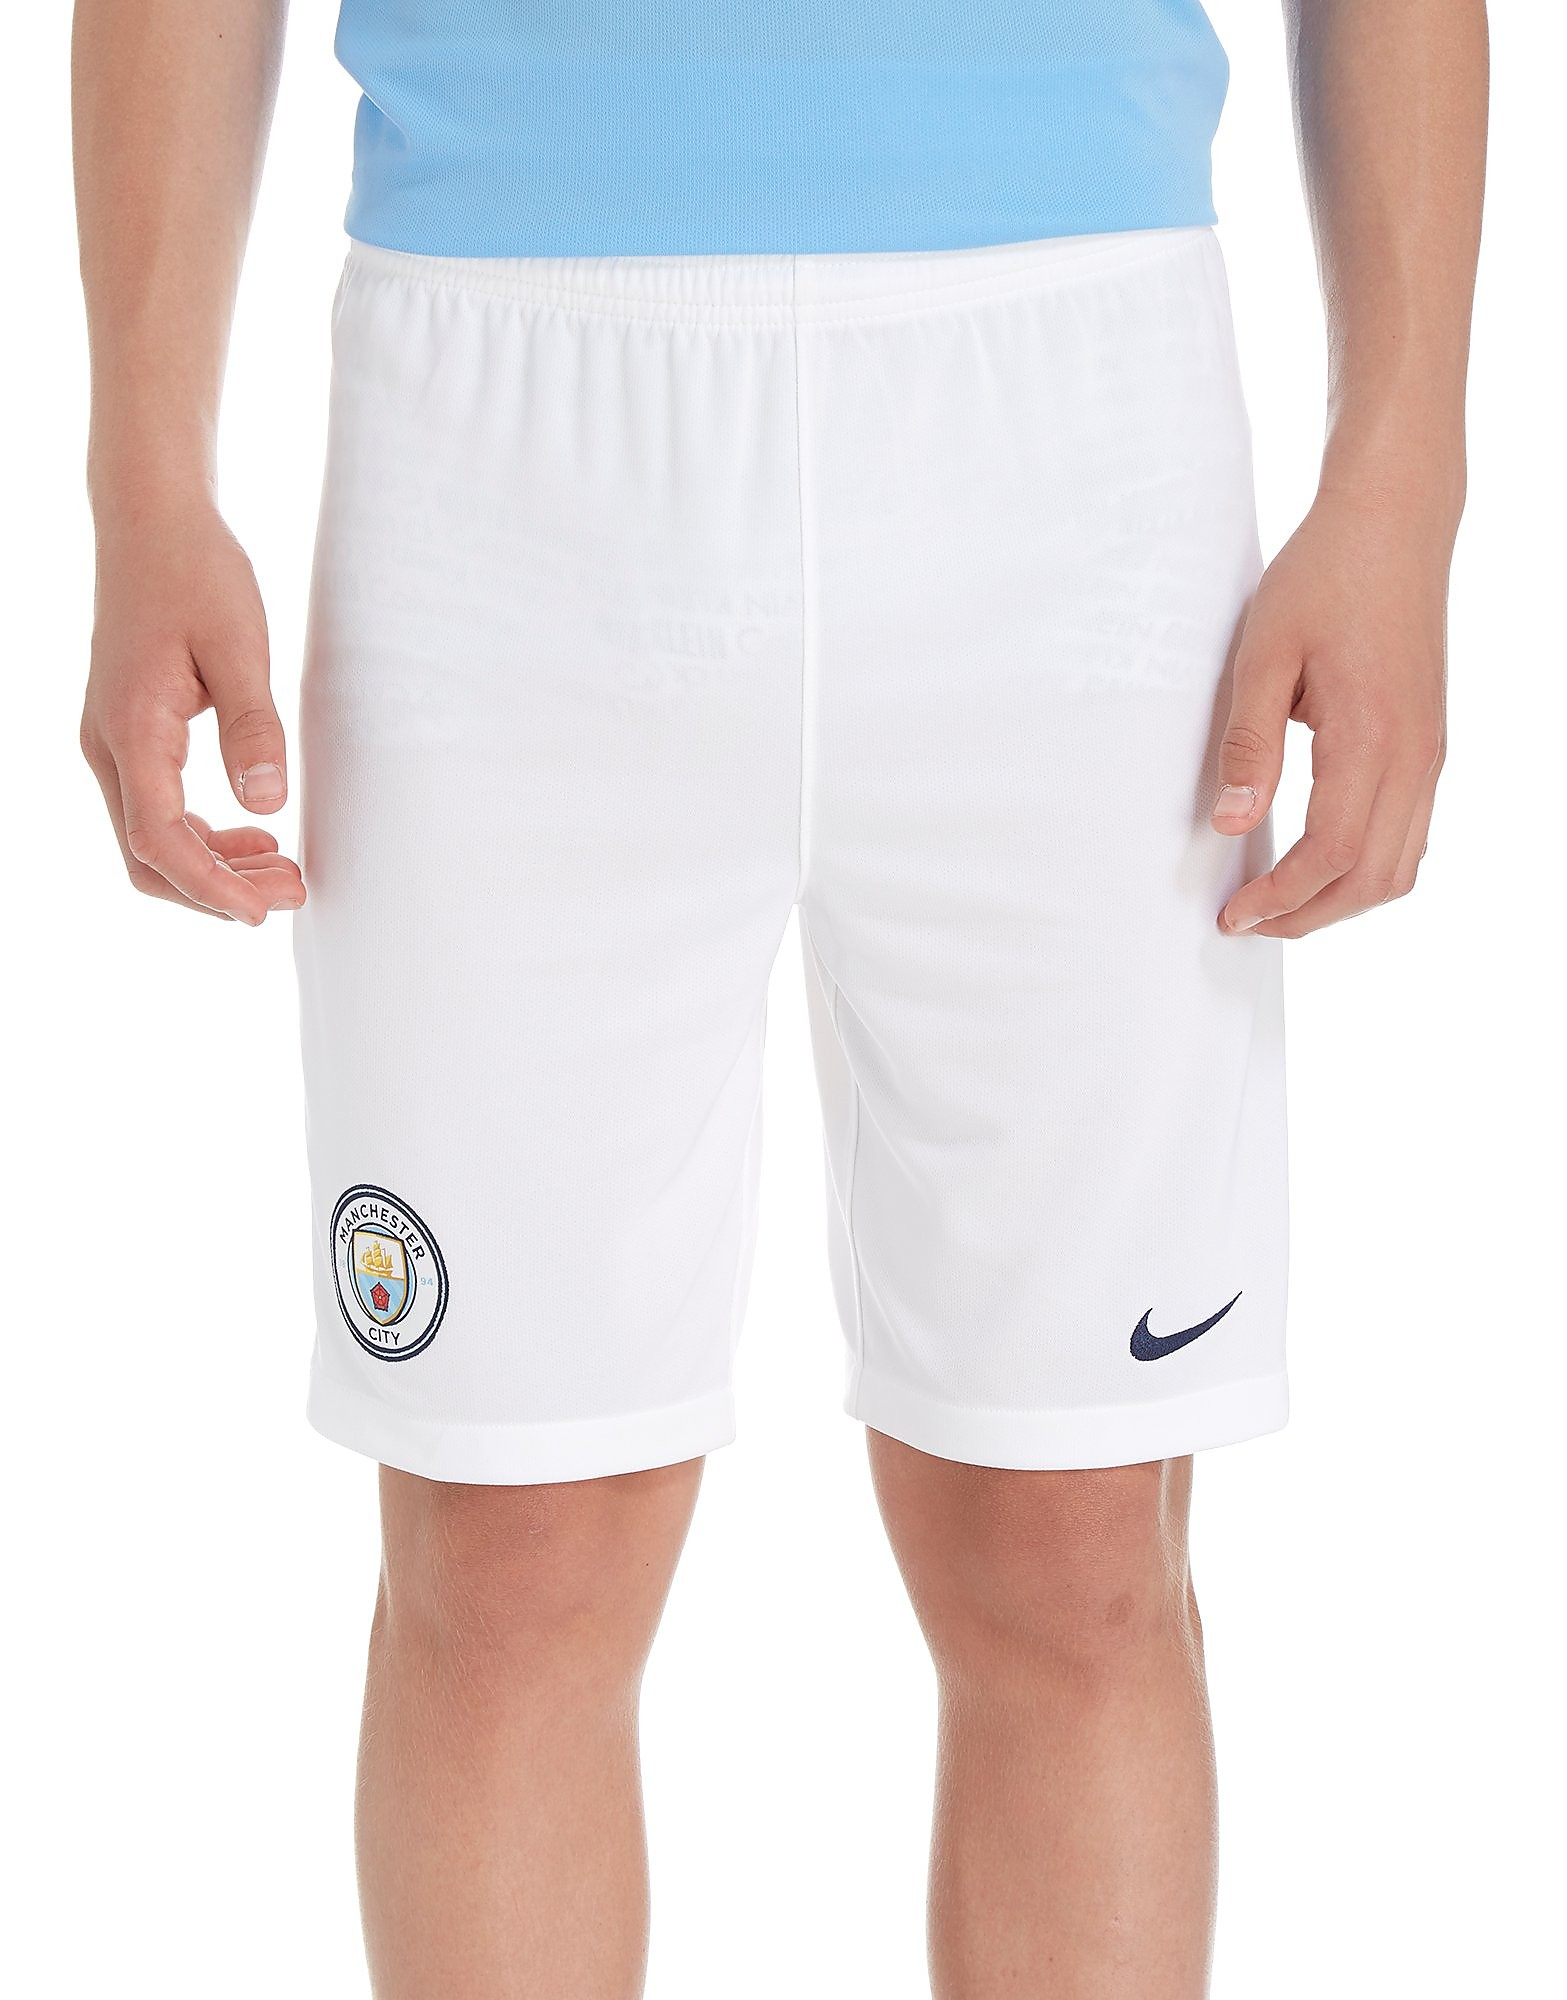 Nike Manchester City 2017/18 Home Shorts Jnr PRE ORDER